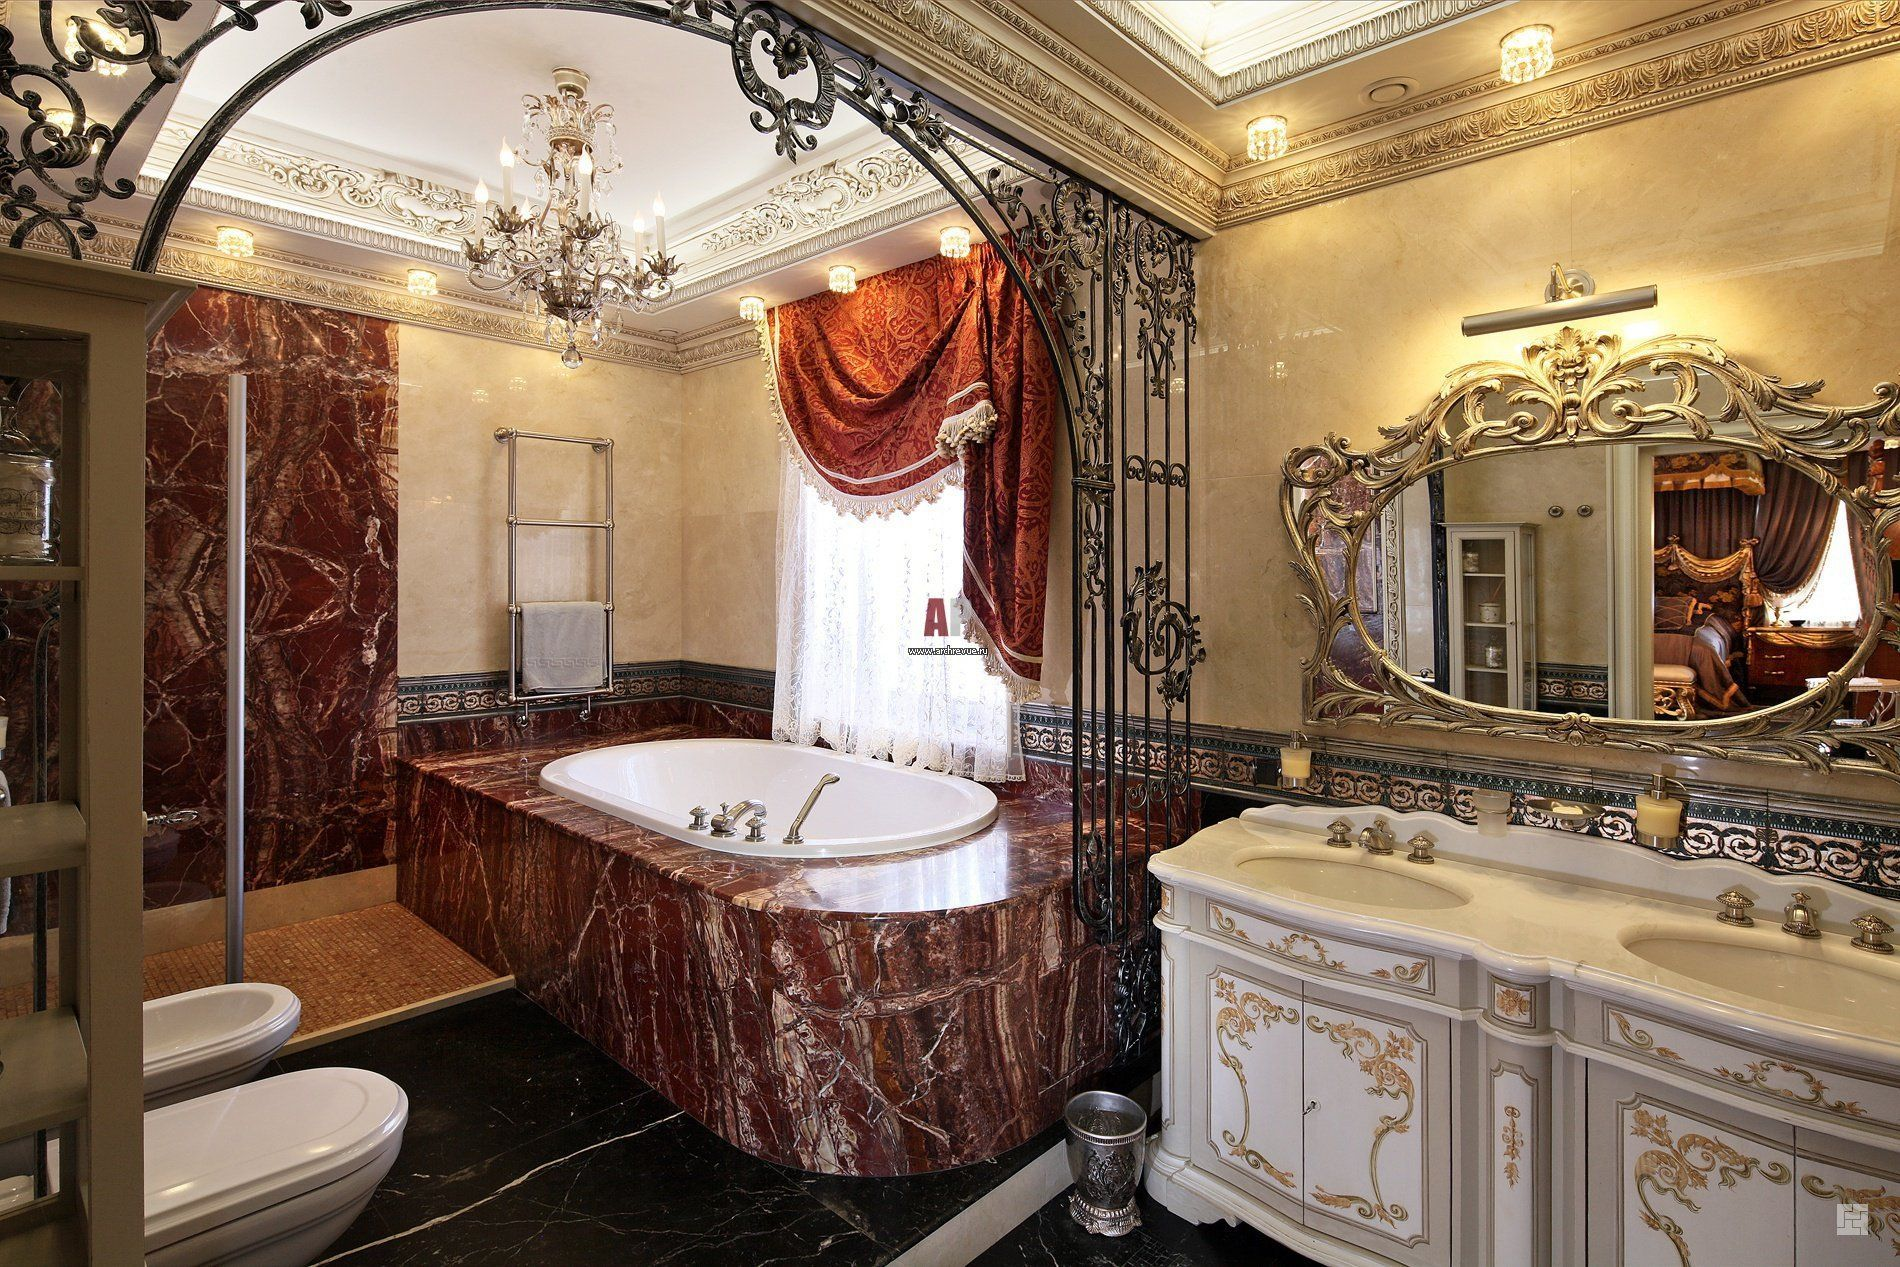 Bathroom In Baroque Is Least Pretentious Than The Other Rooms House Exquisite Gold Plated Taps Marble Sinks Mosaic On Ceiling And Wall